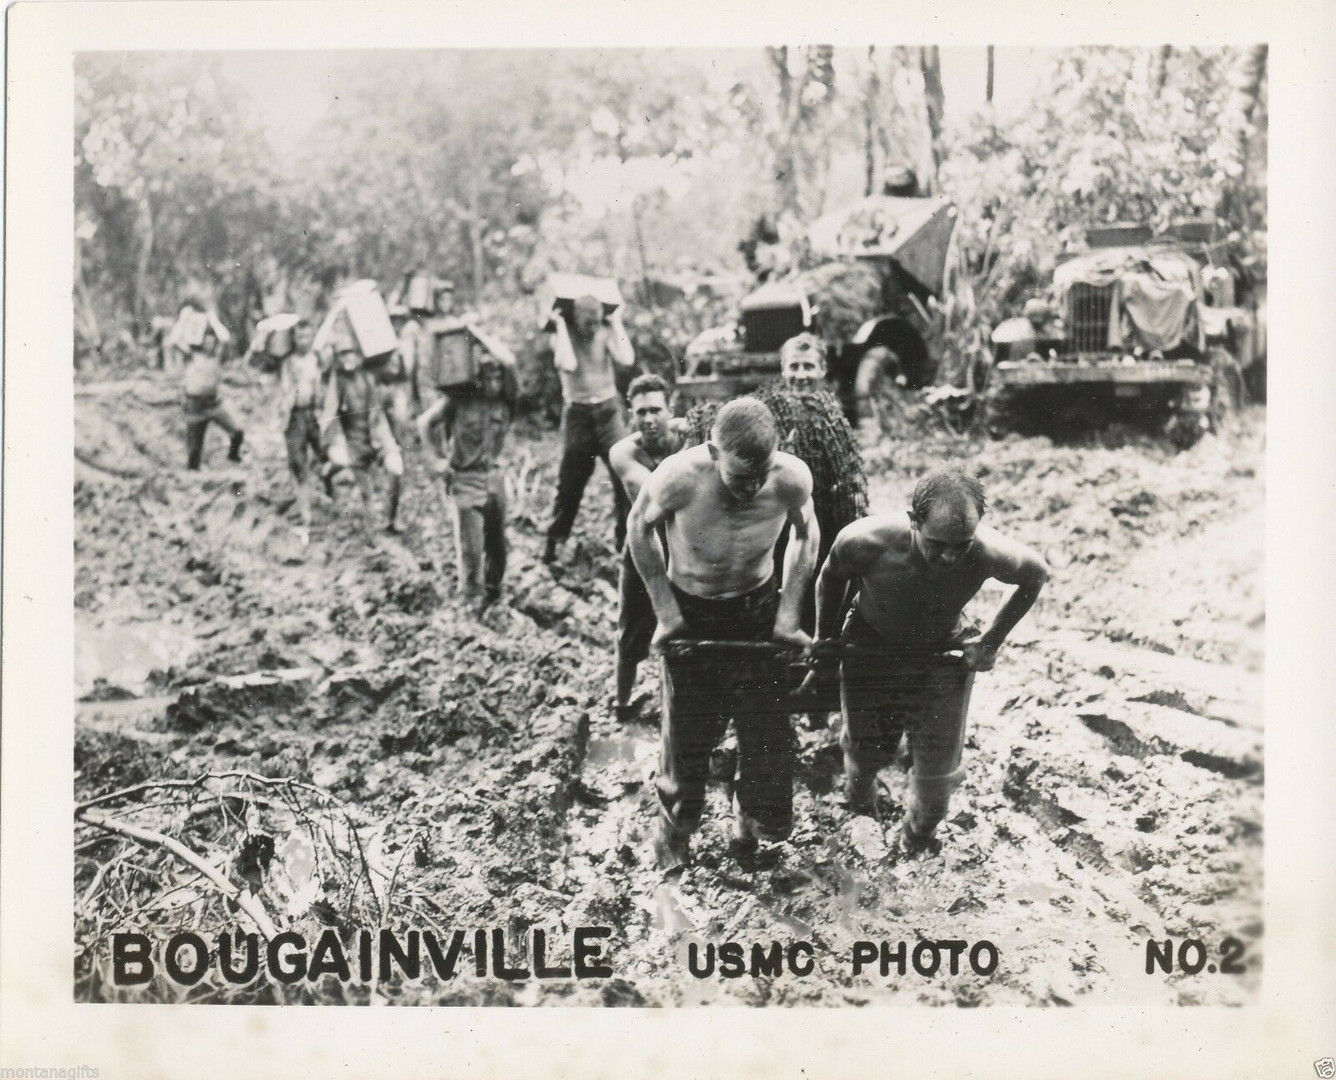 Soldiers slog through Bougainville mud.